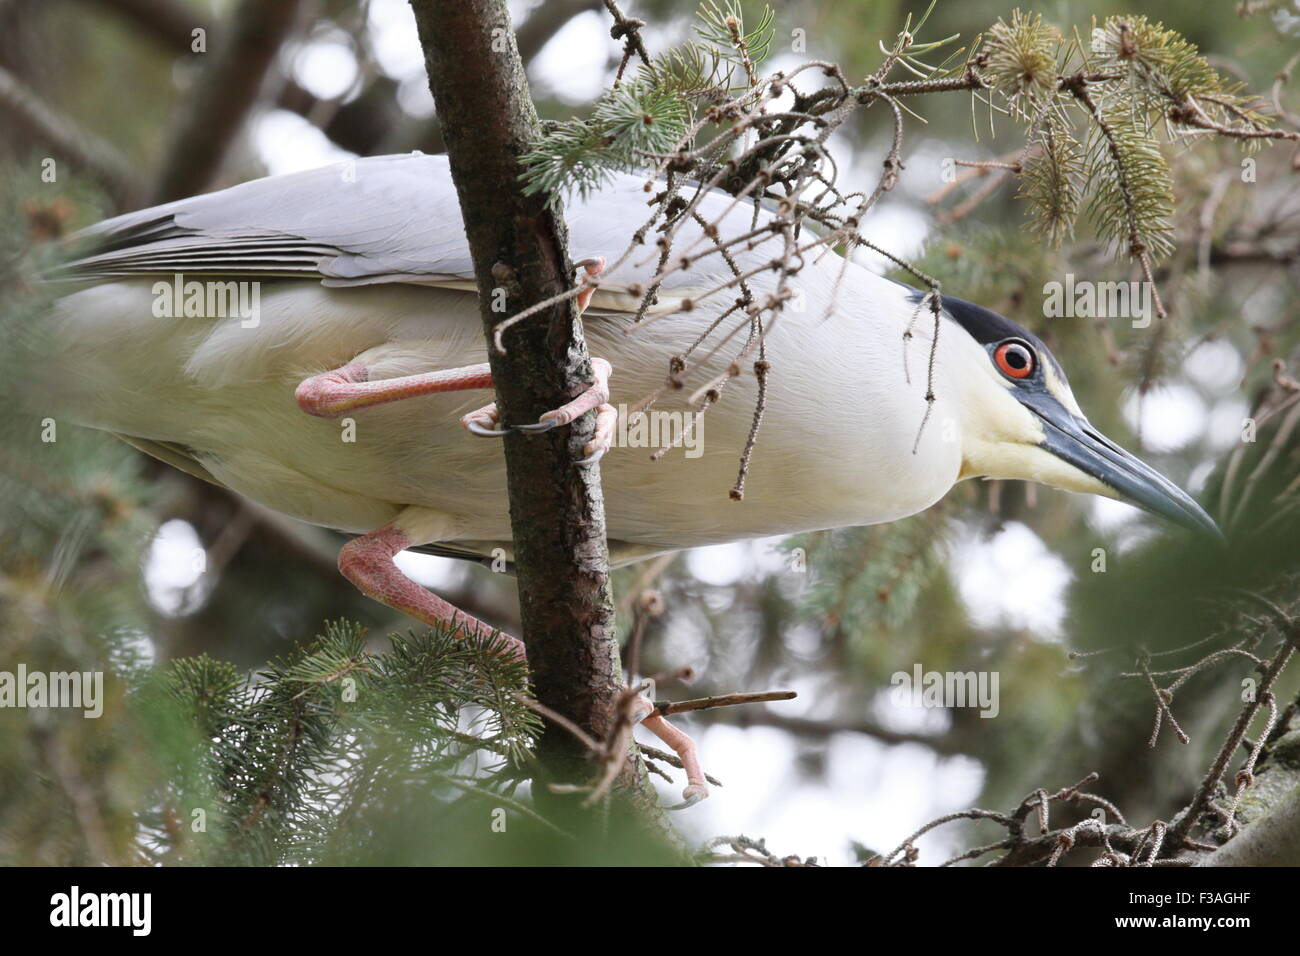 Heron up in a tree. - Stock Image